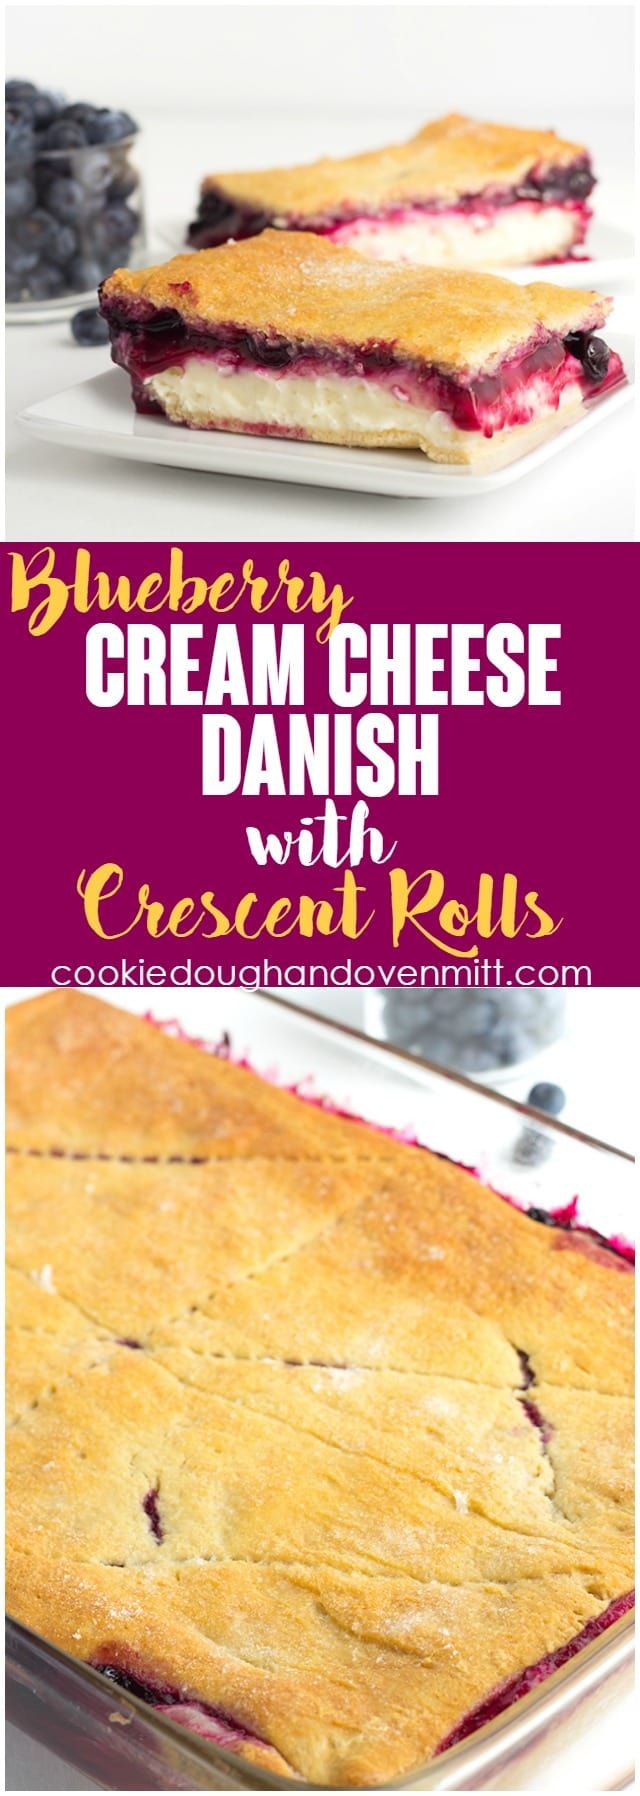 Blueberry Cream Cheese Danish with Crescent Rolls - Need a dessert that will feed a crowd? This blueberry cream cheese danish with crescent rolls is perfect! There's a fresh blueberry filling loaded on top of a cheesecake and sandwiched between crescent rolls! via @mmmirnanda